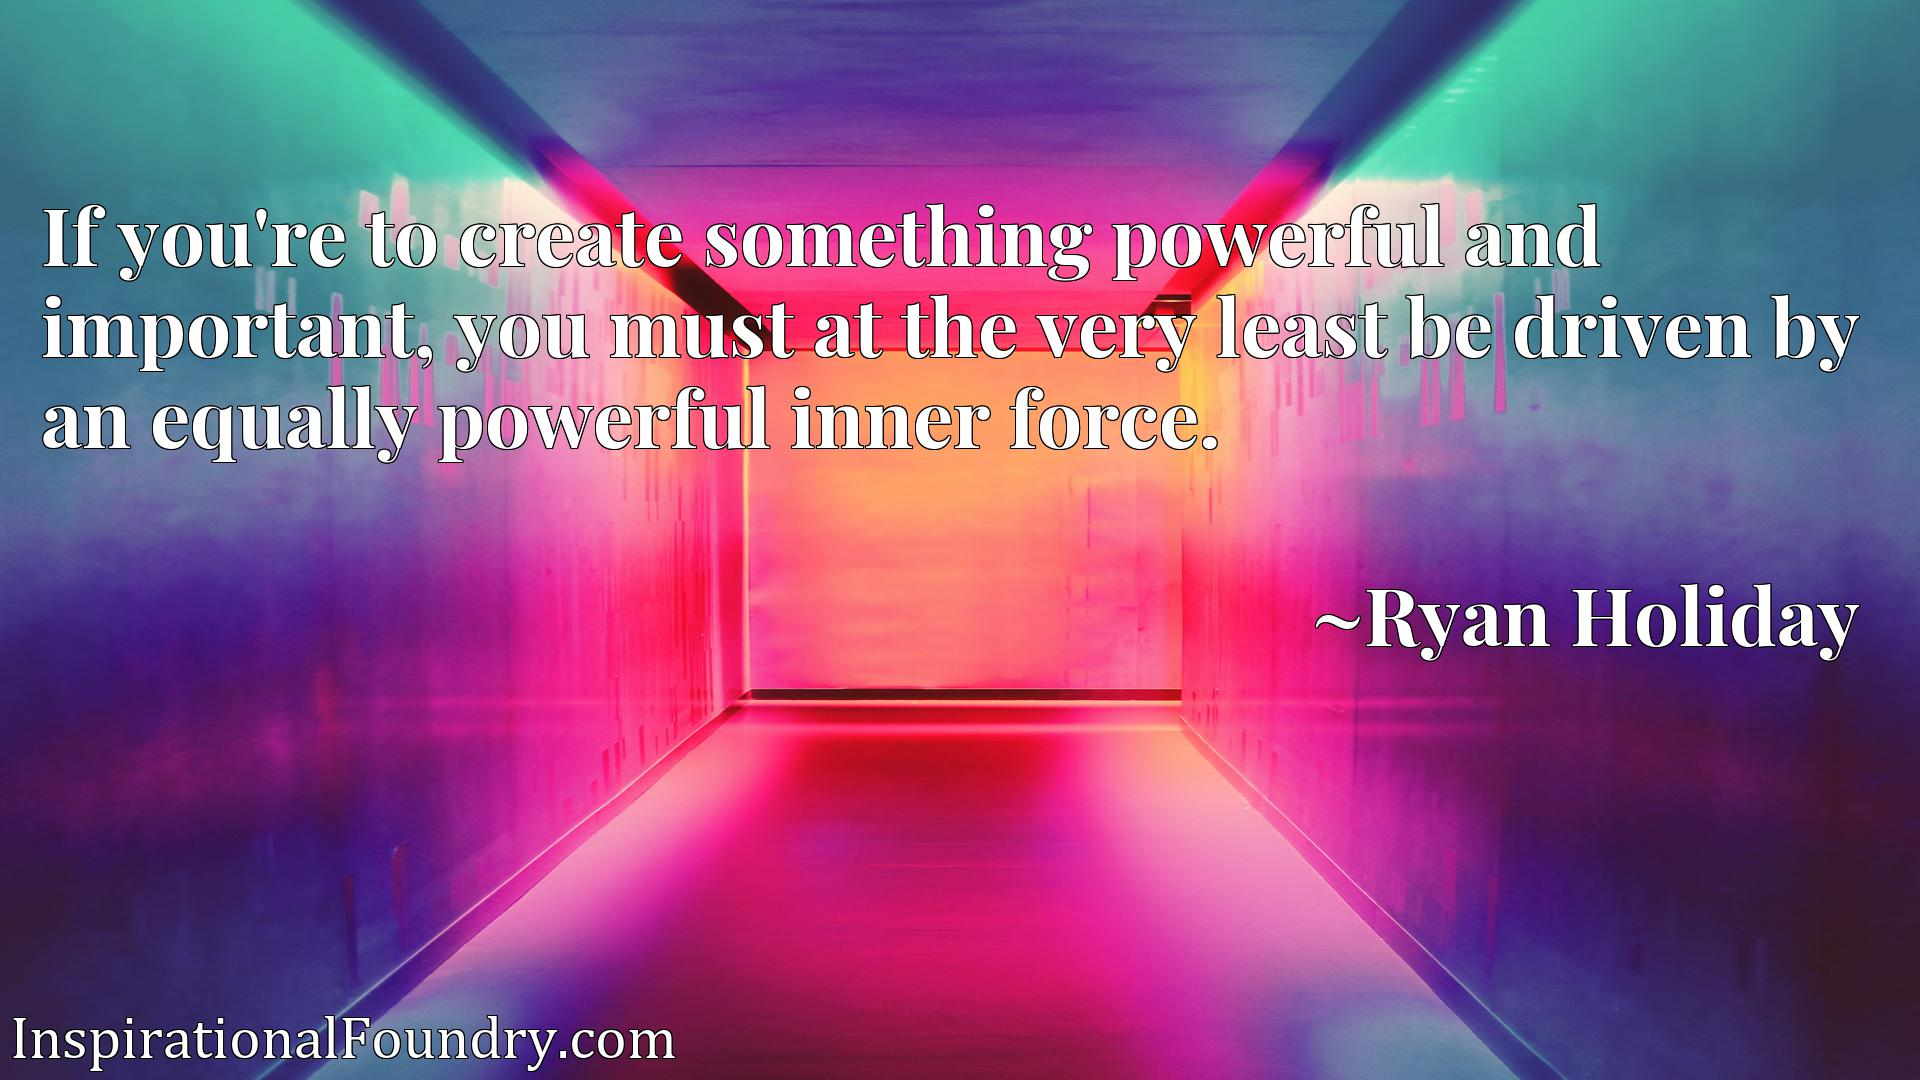 If you're to create something powerful and important, you must at the very least be driven by an equally powerful inner force.